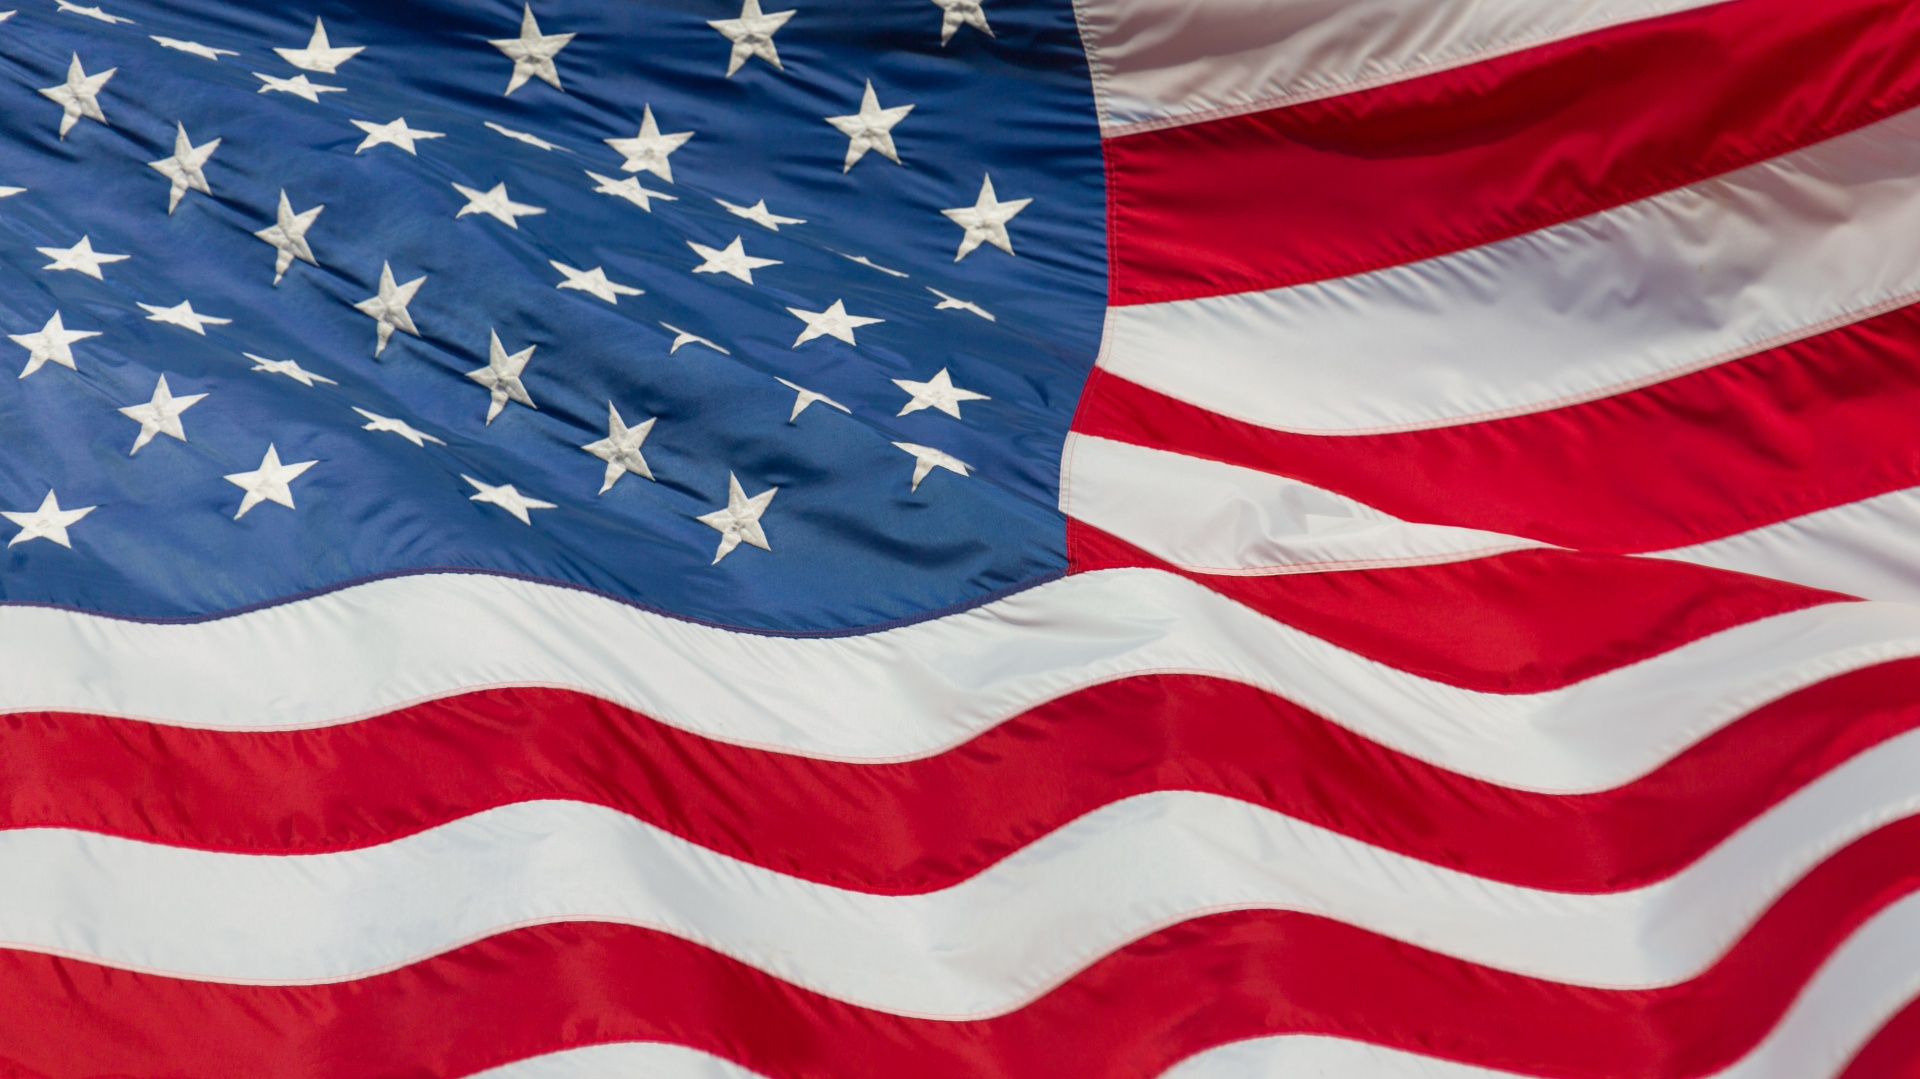 American Flag Background Free Stock Photo - Public Domain Pictures